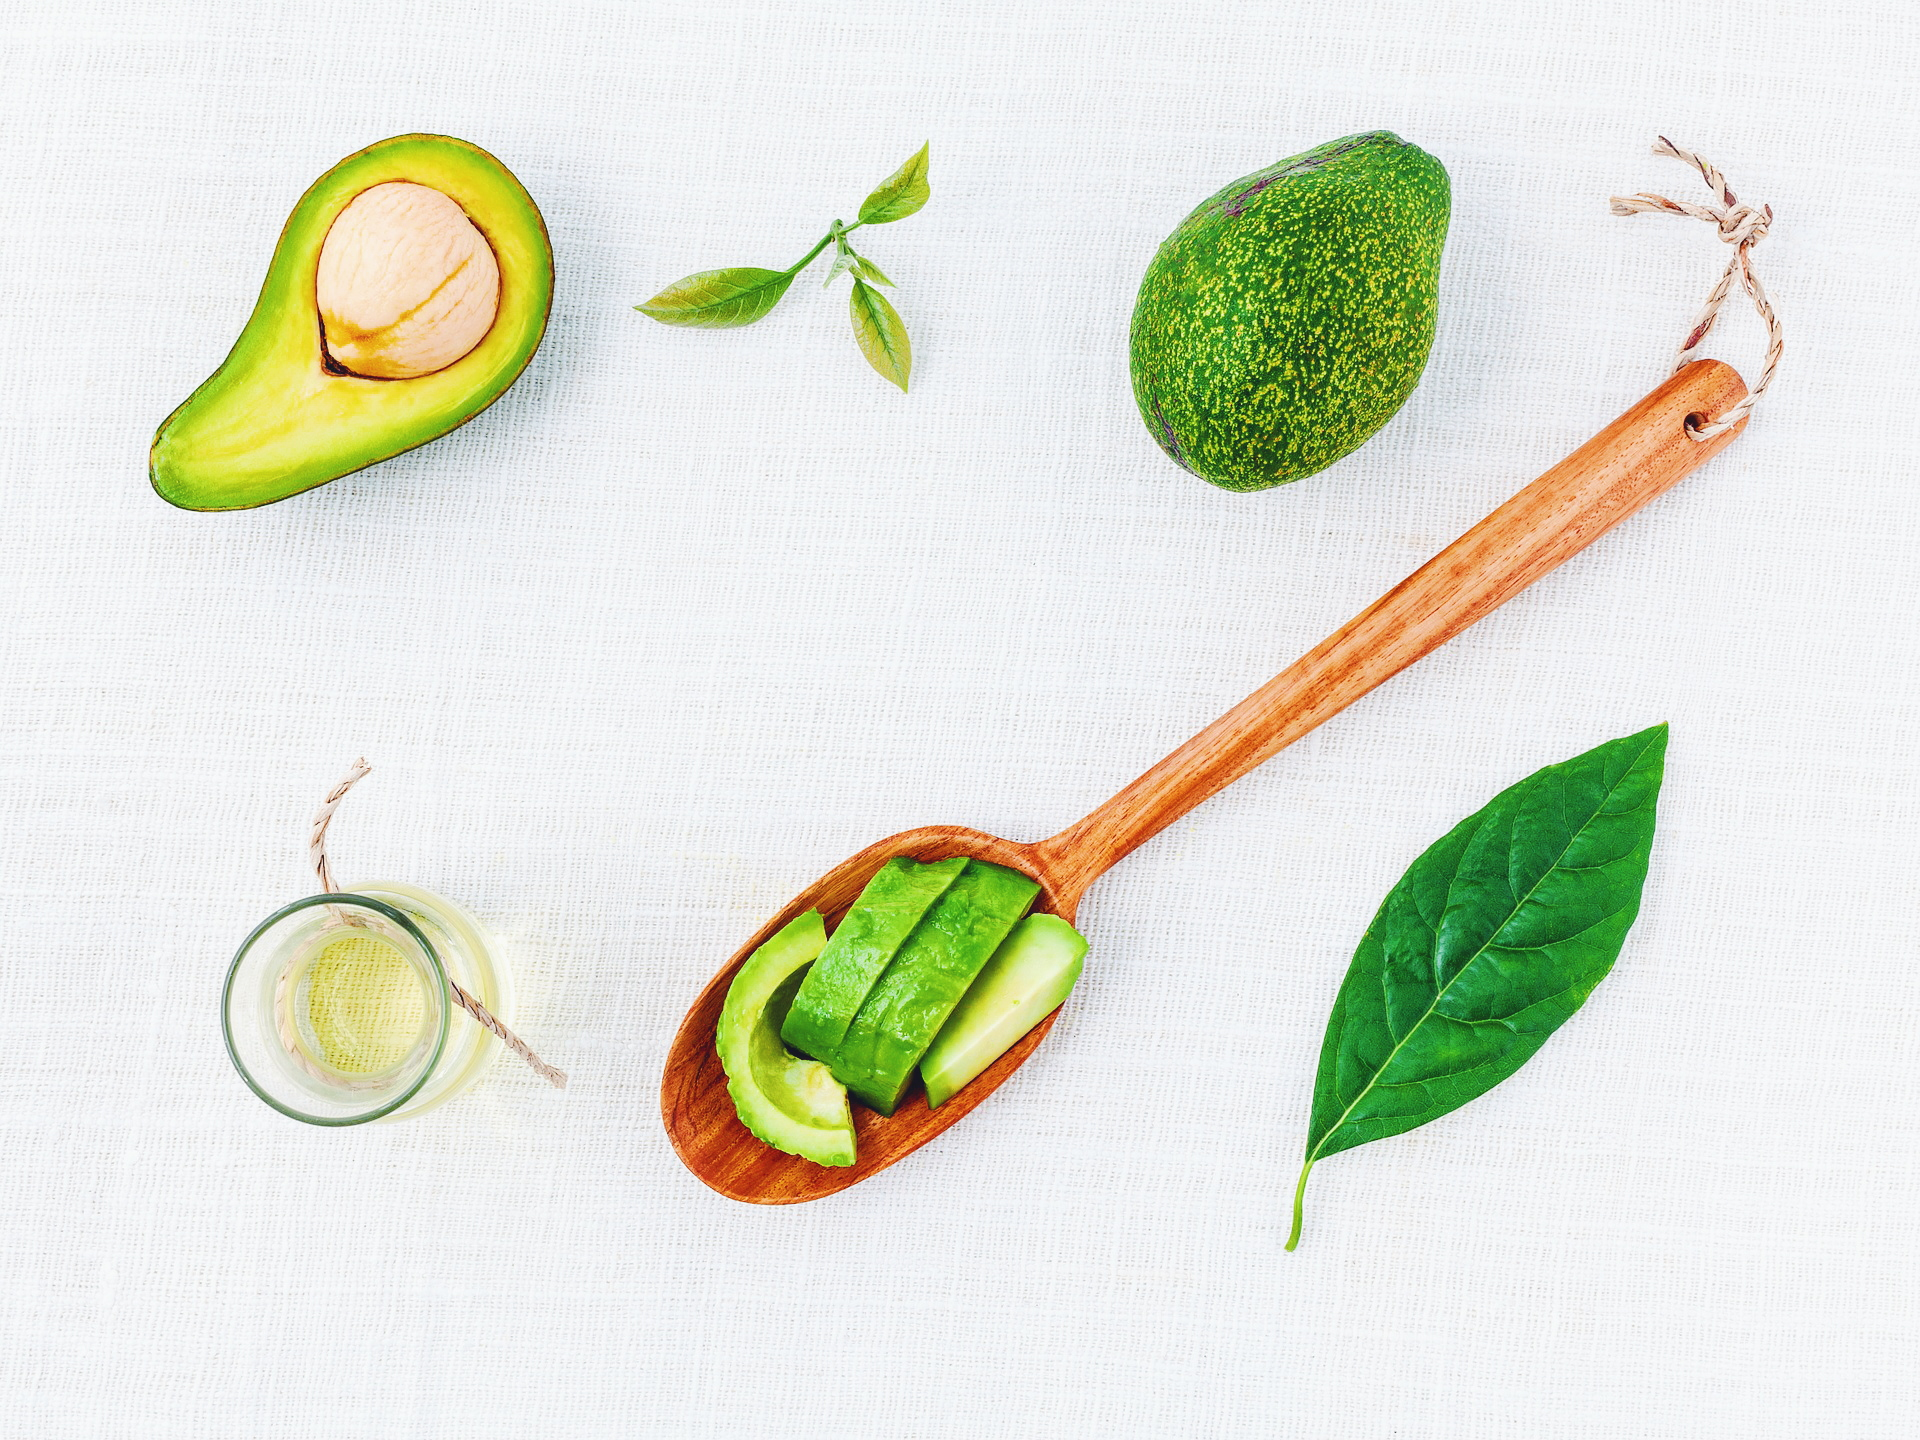 Avocado Benefits For Skin & Hair: Get Radiance and Elasticity!